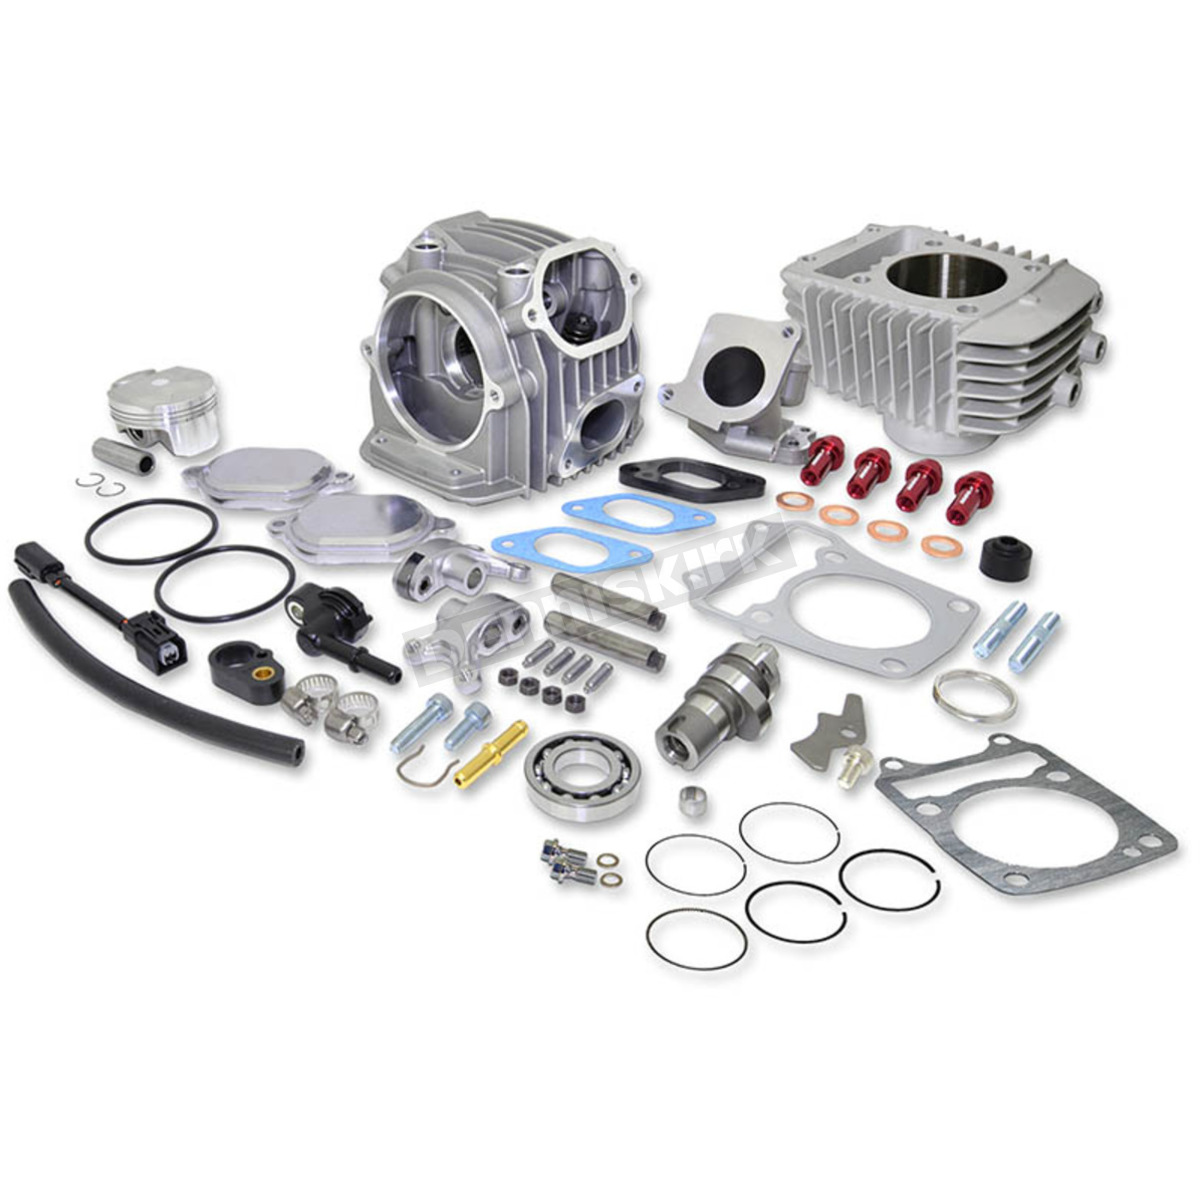 Koso North America 170cc Big Bore Kit With 4 Valve